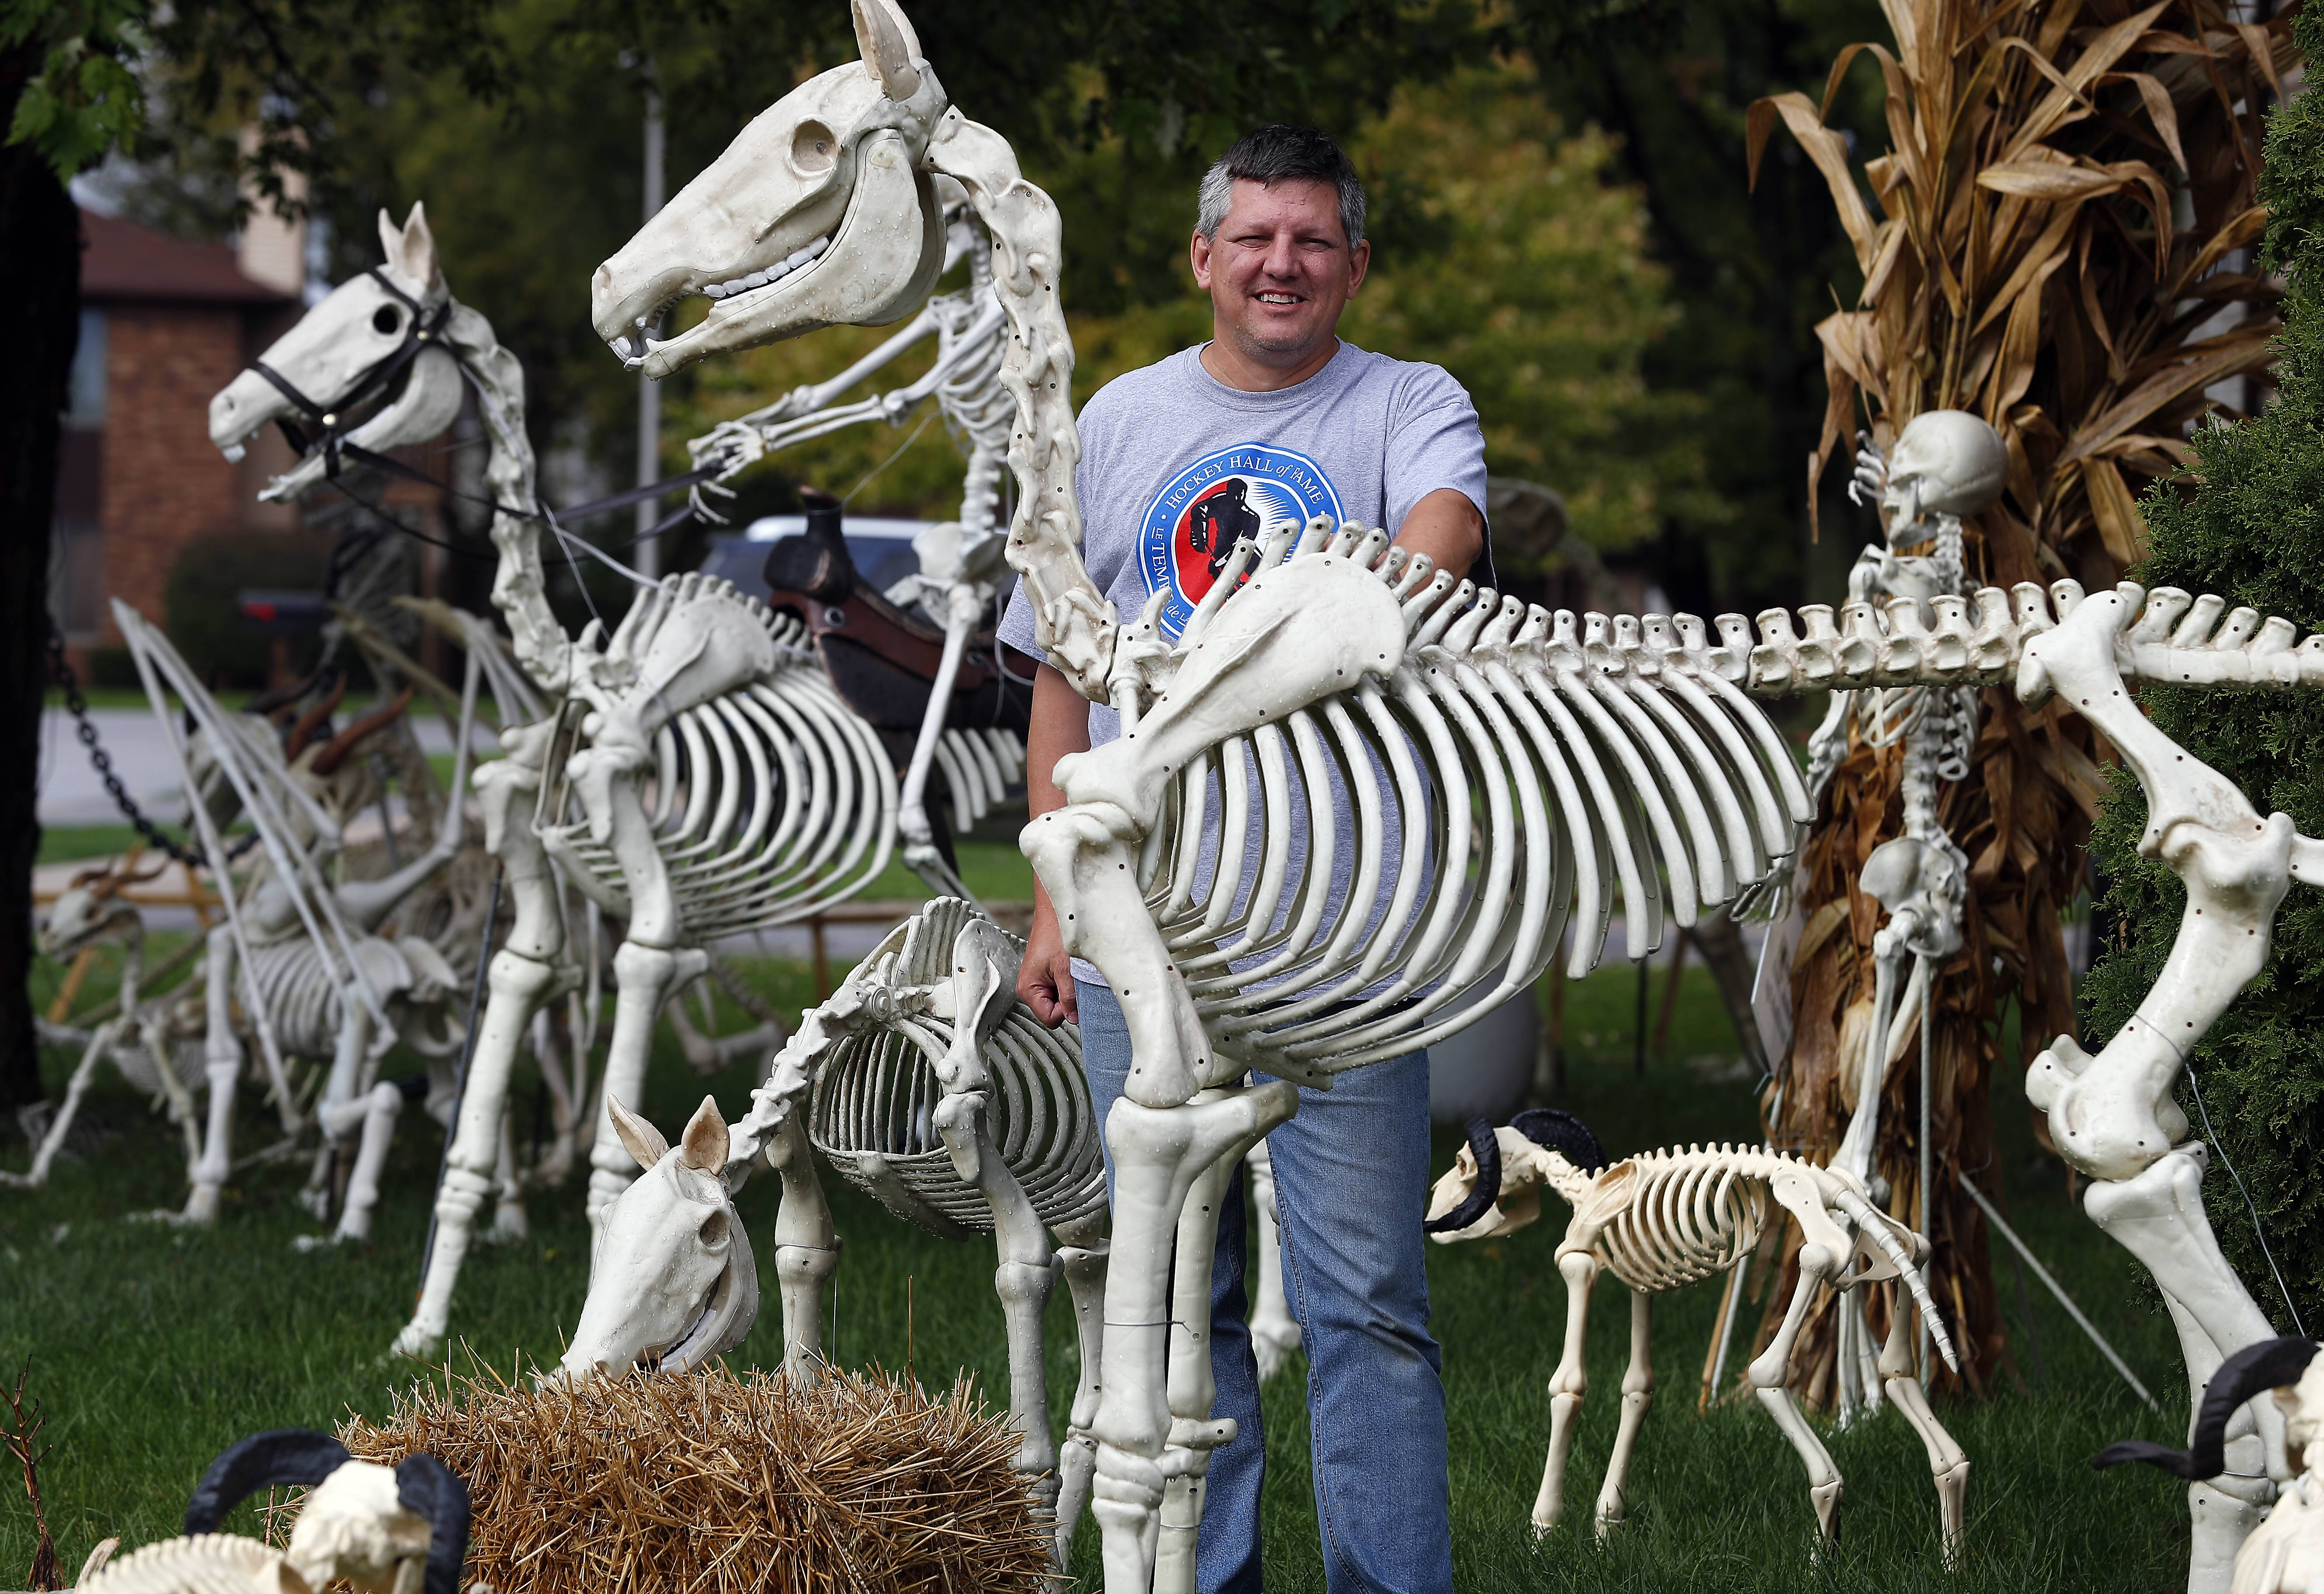 82 skeletons and counting in South Elgin Halloween display